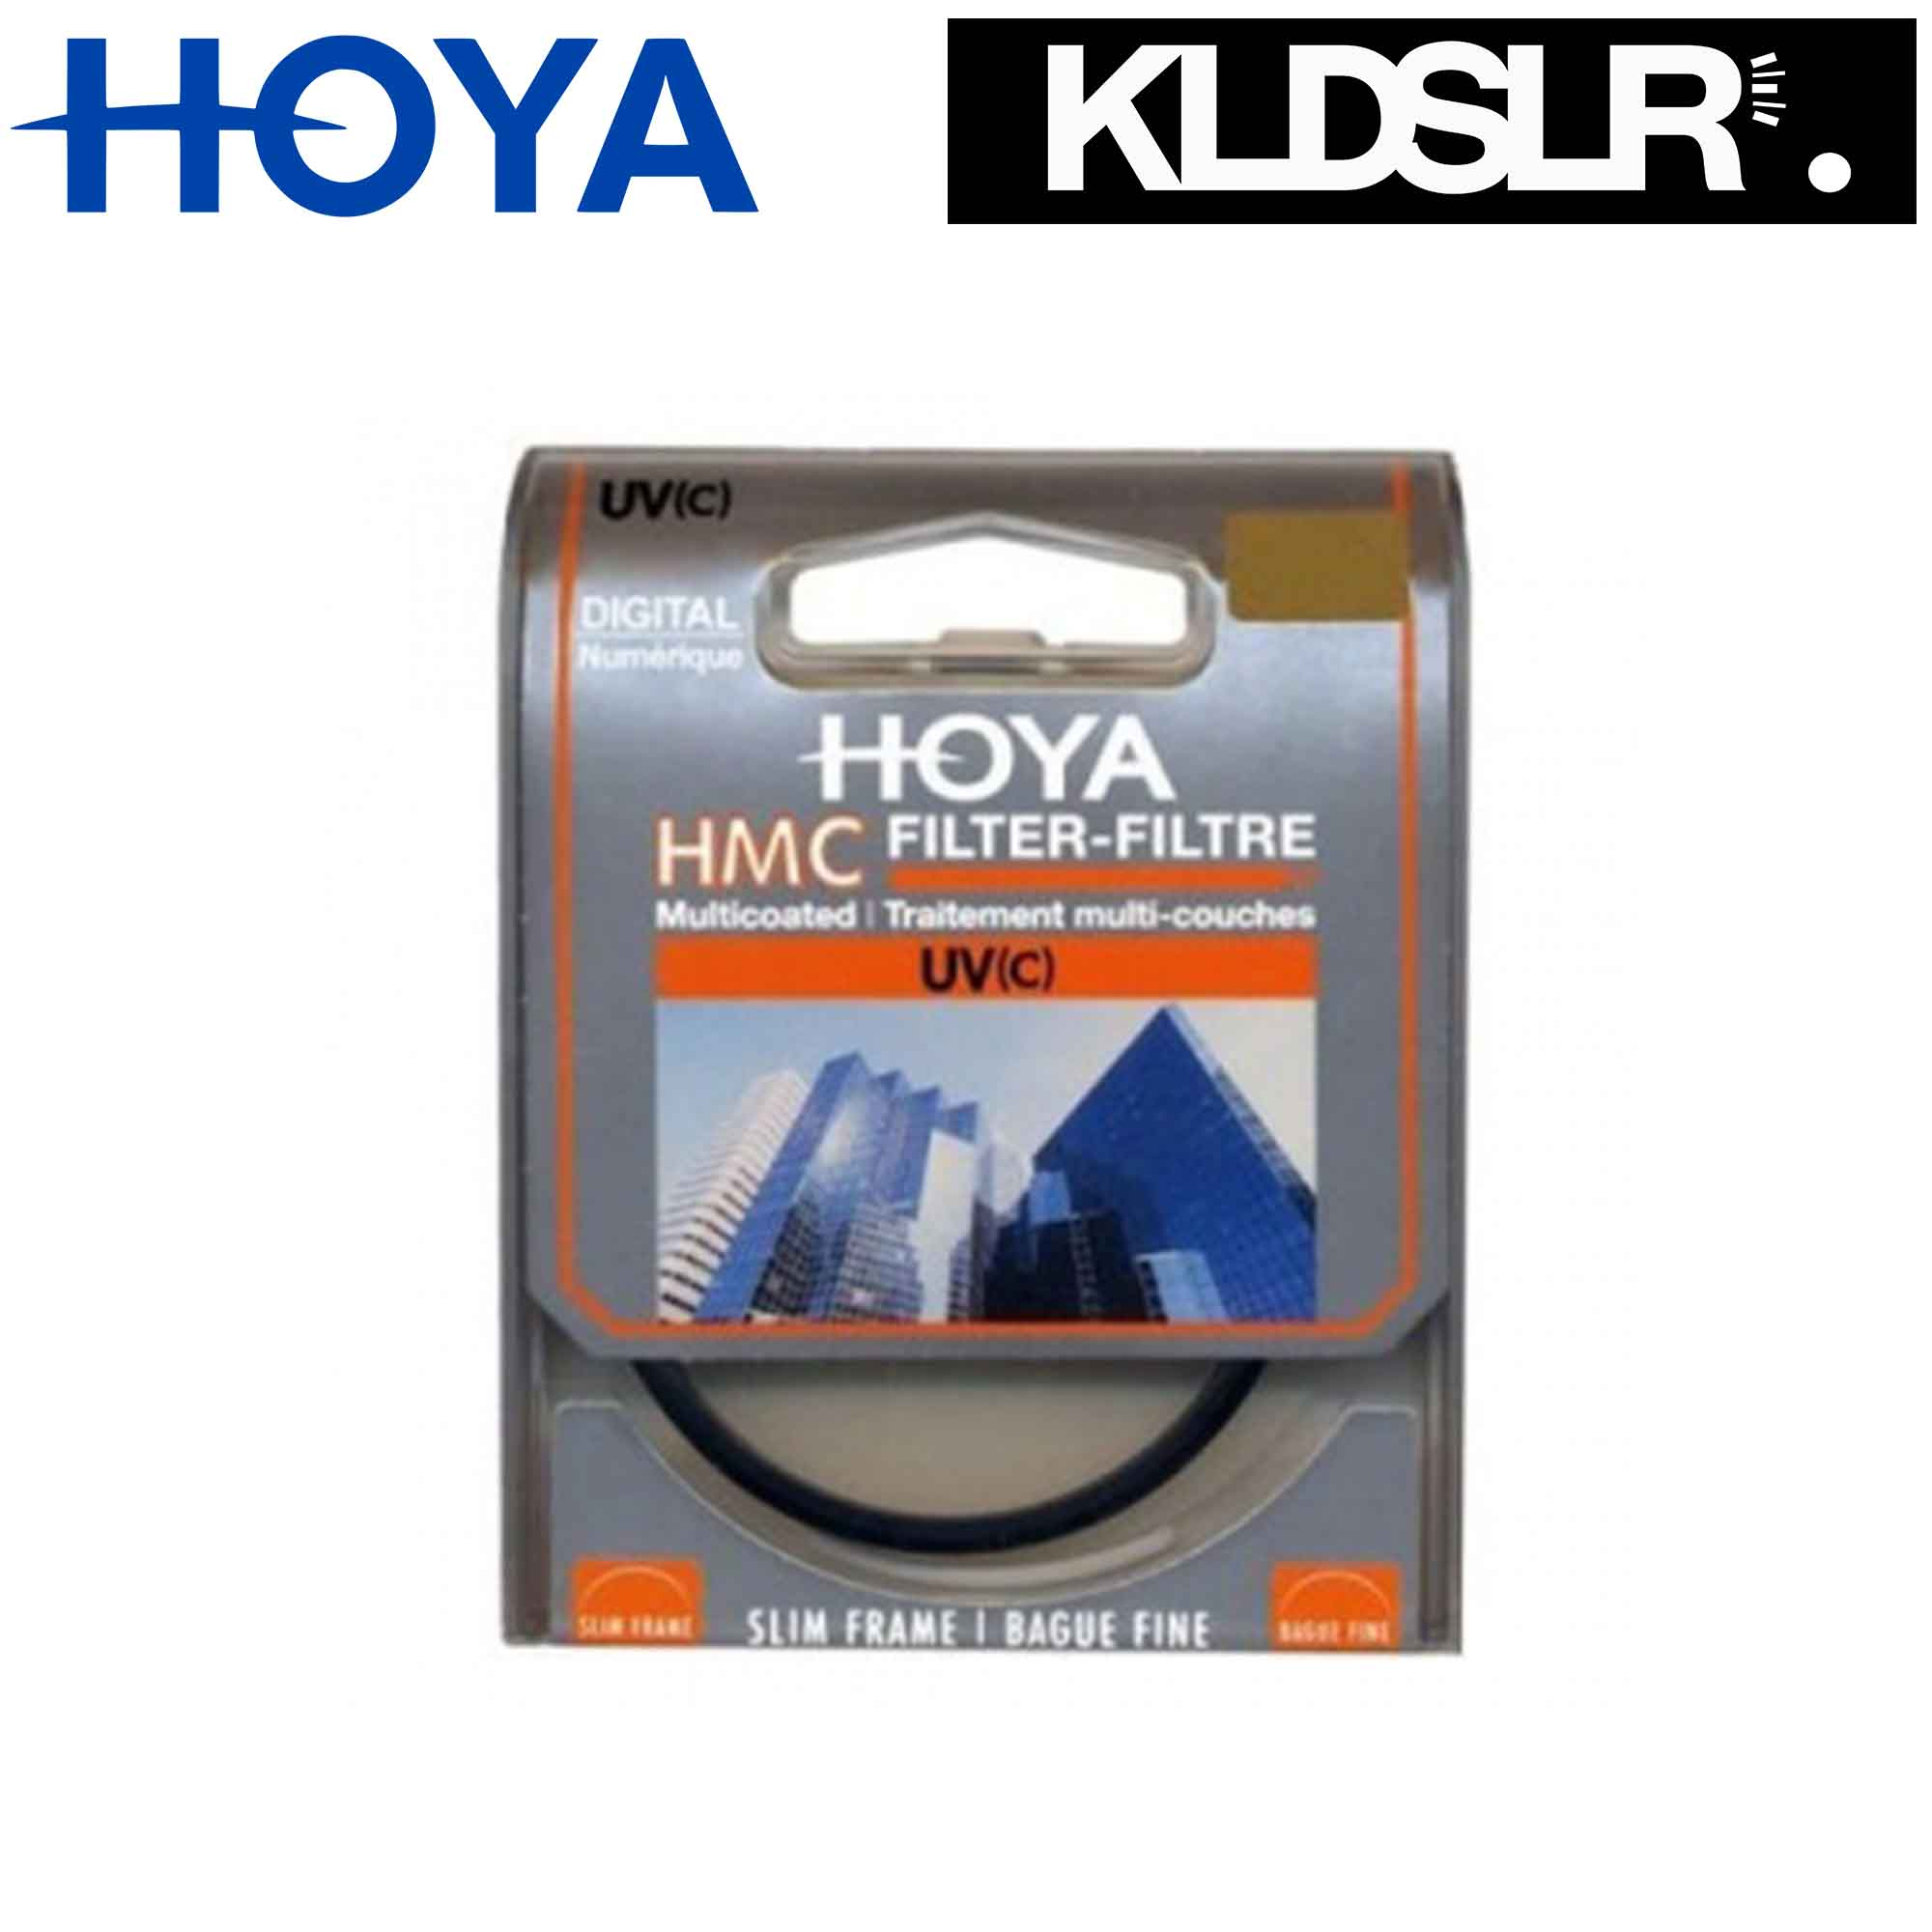 Hoya 77mm Digital Multicoated HMC UV(C) Filter Local Original Seal Unit